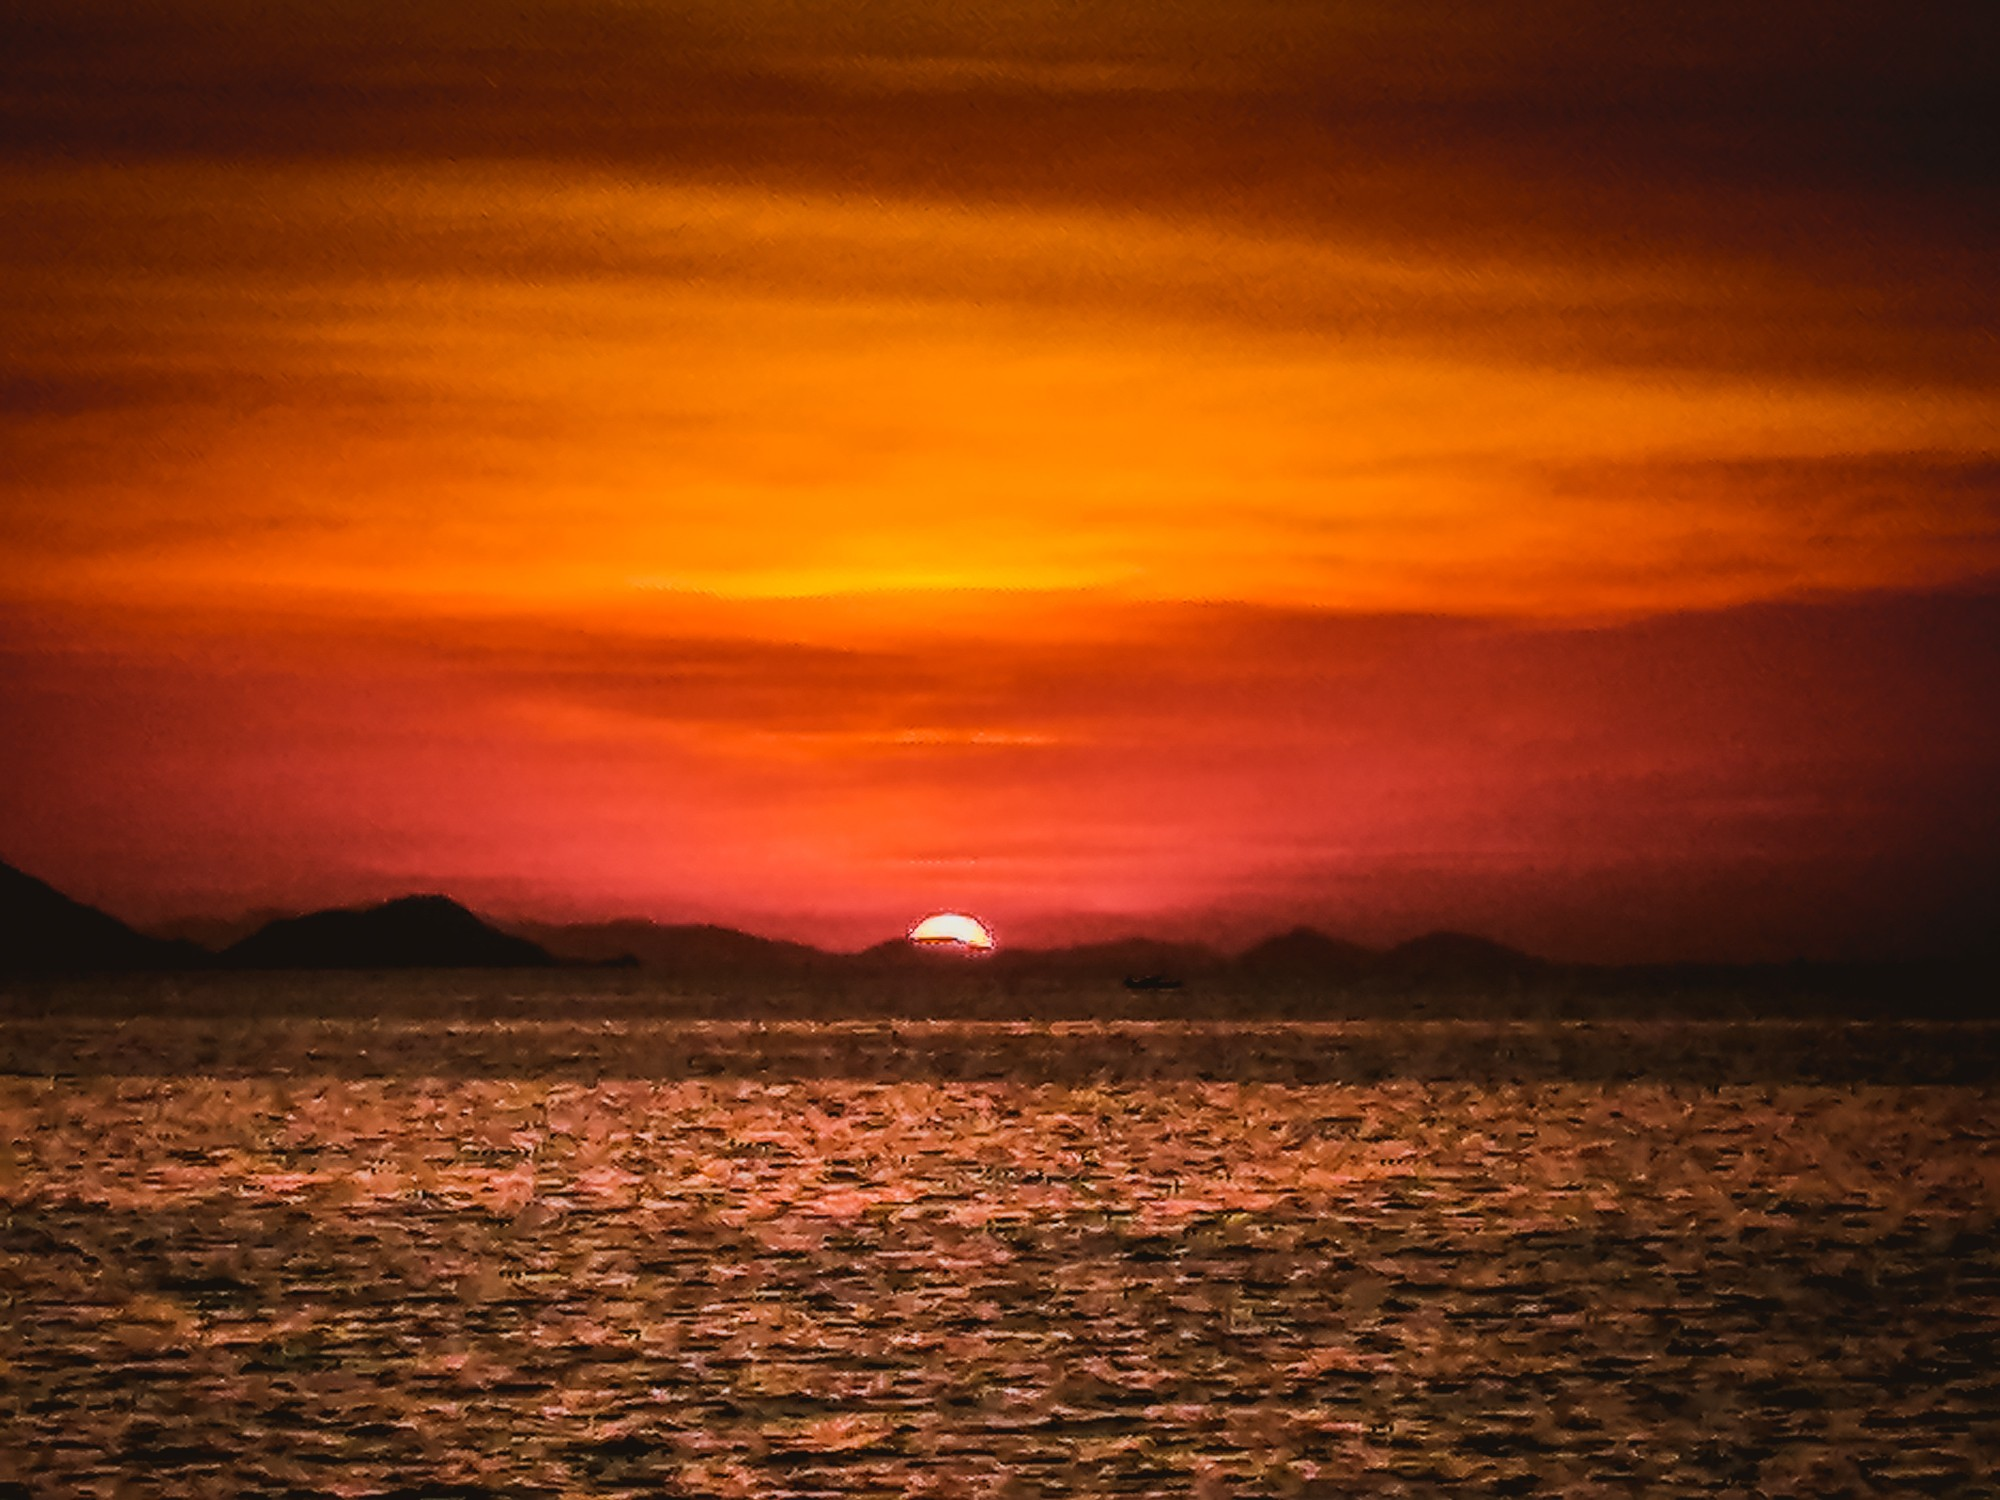 From Komodo National Park to Maumere